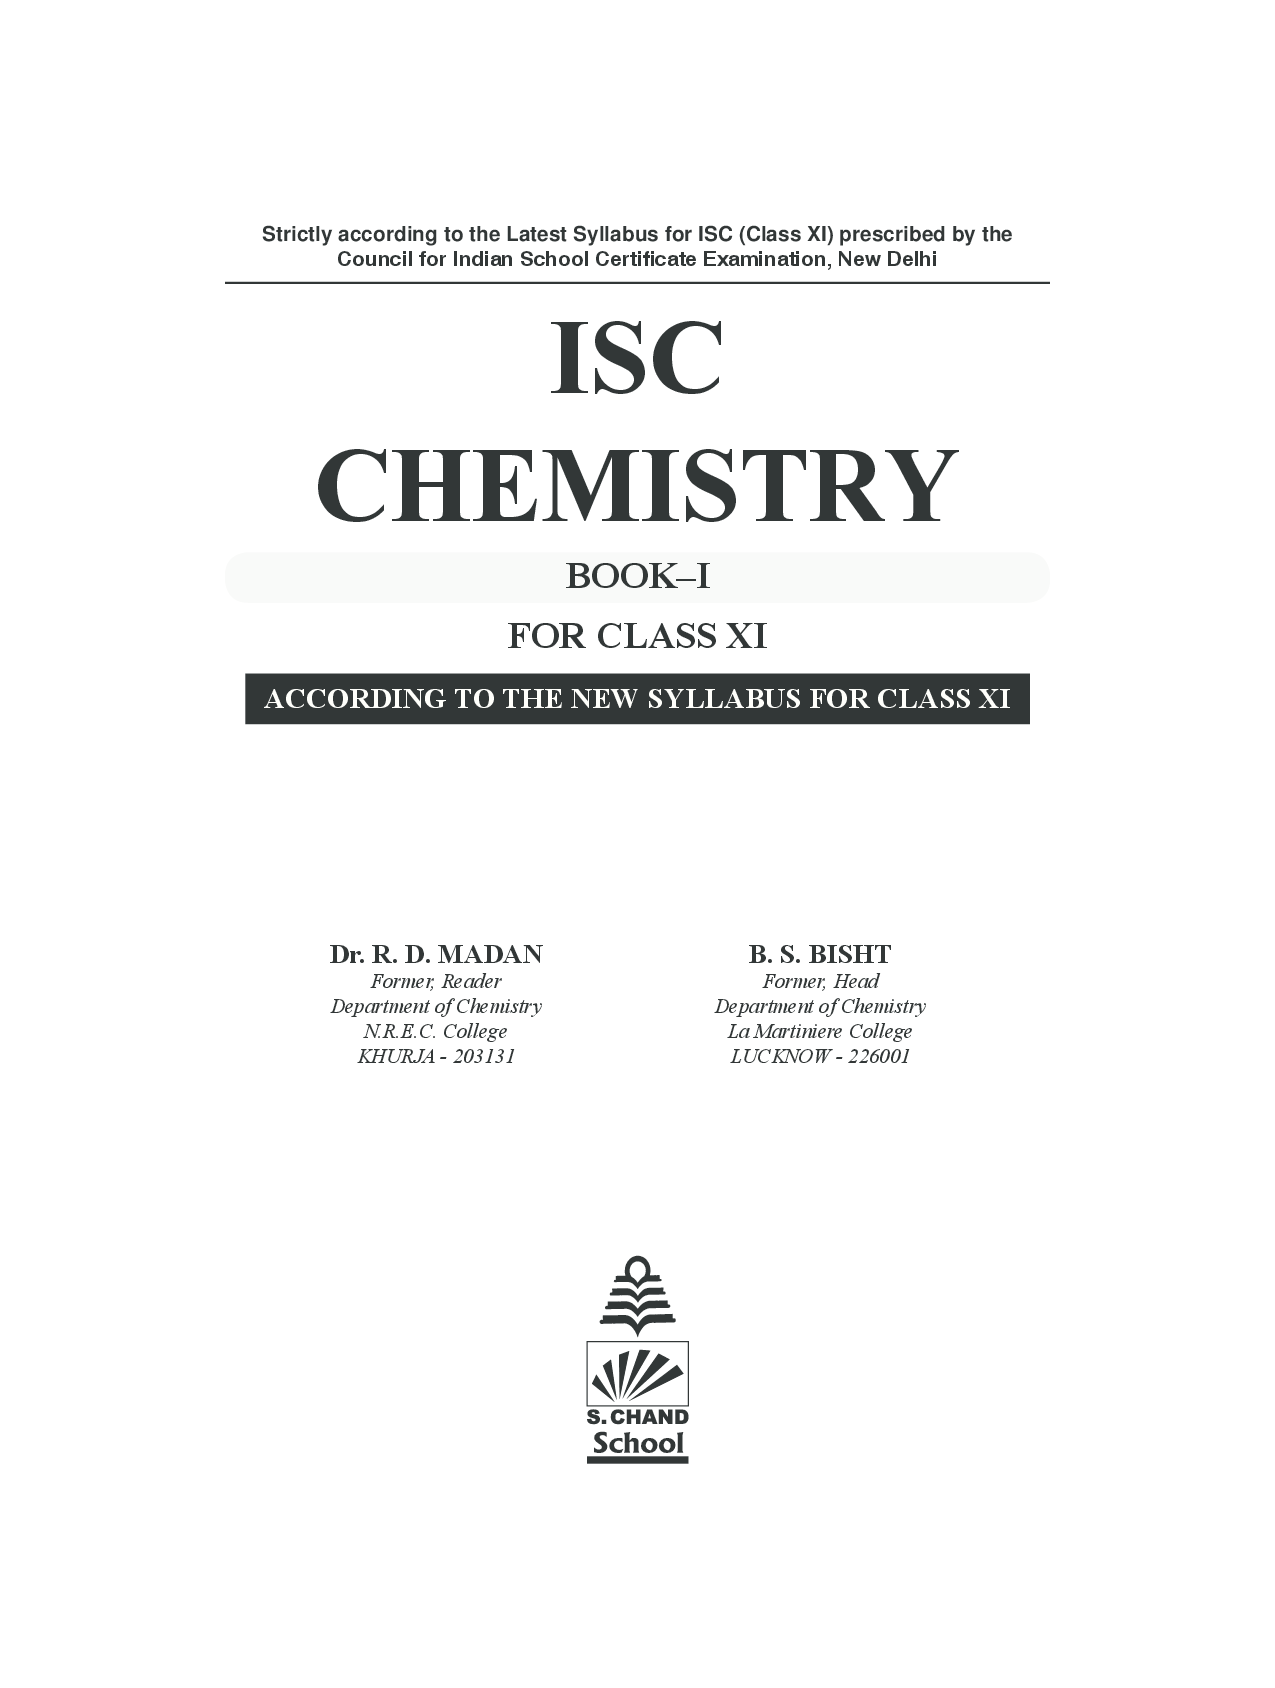 isc books free download pdf